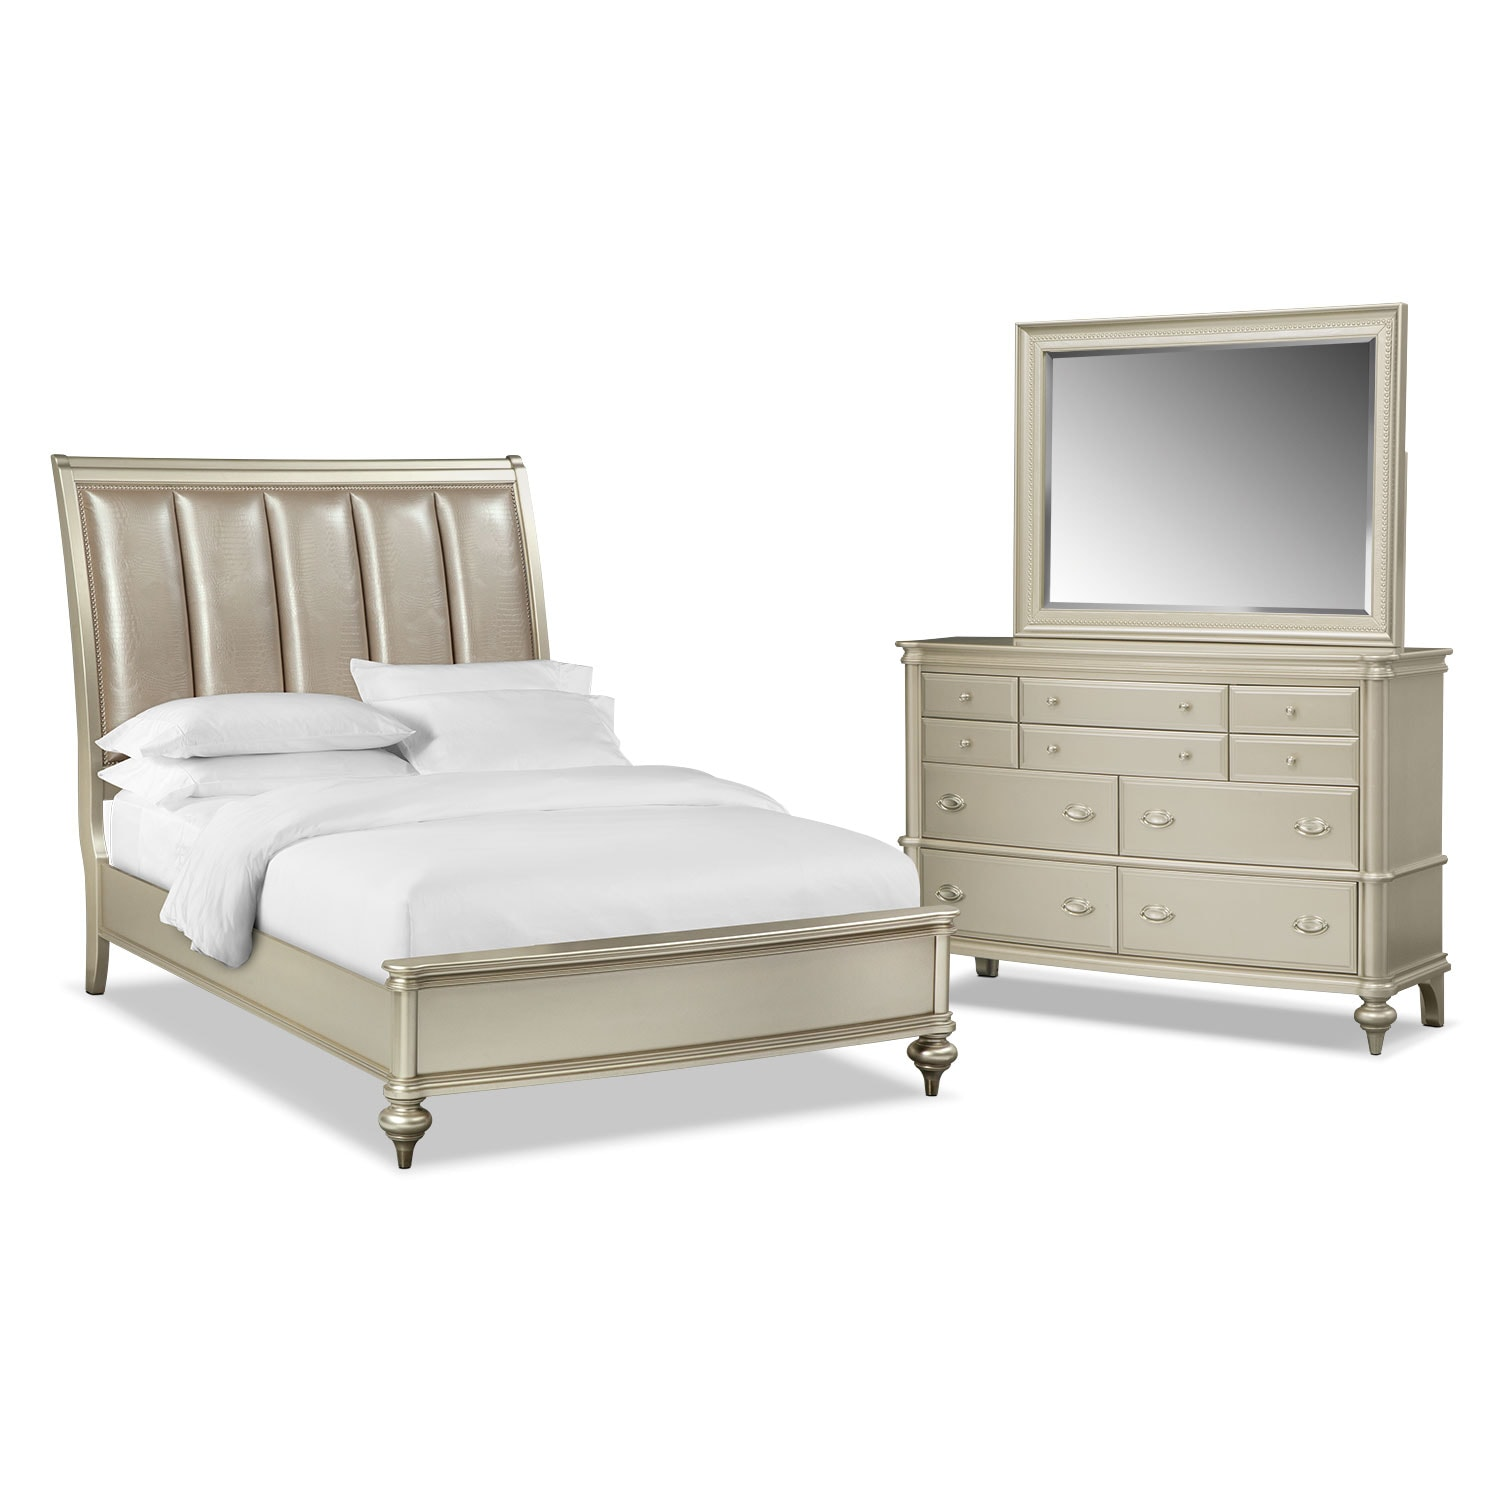 Bedroom Furniture - Esquire 5-Piece Bedroom Set with Dresser and Mirror